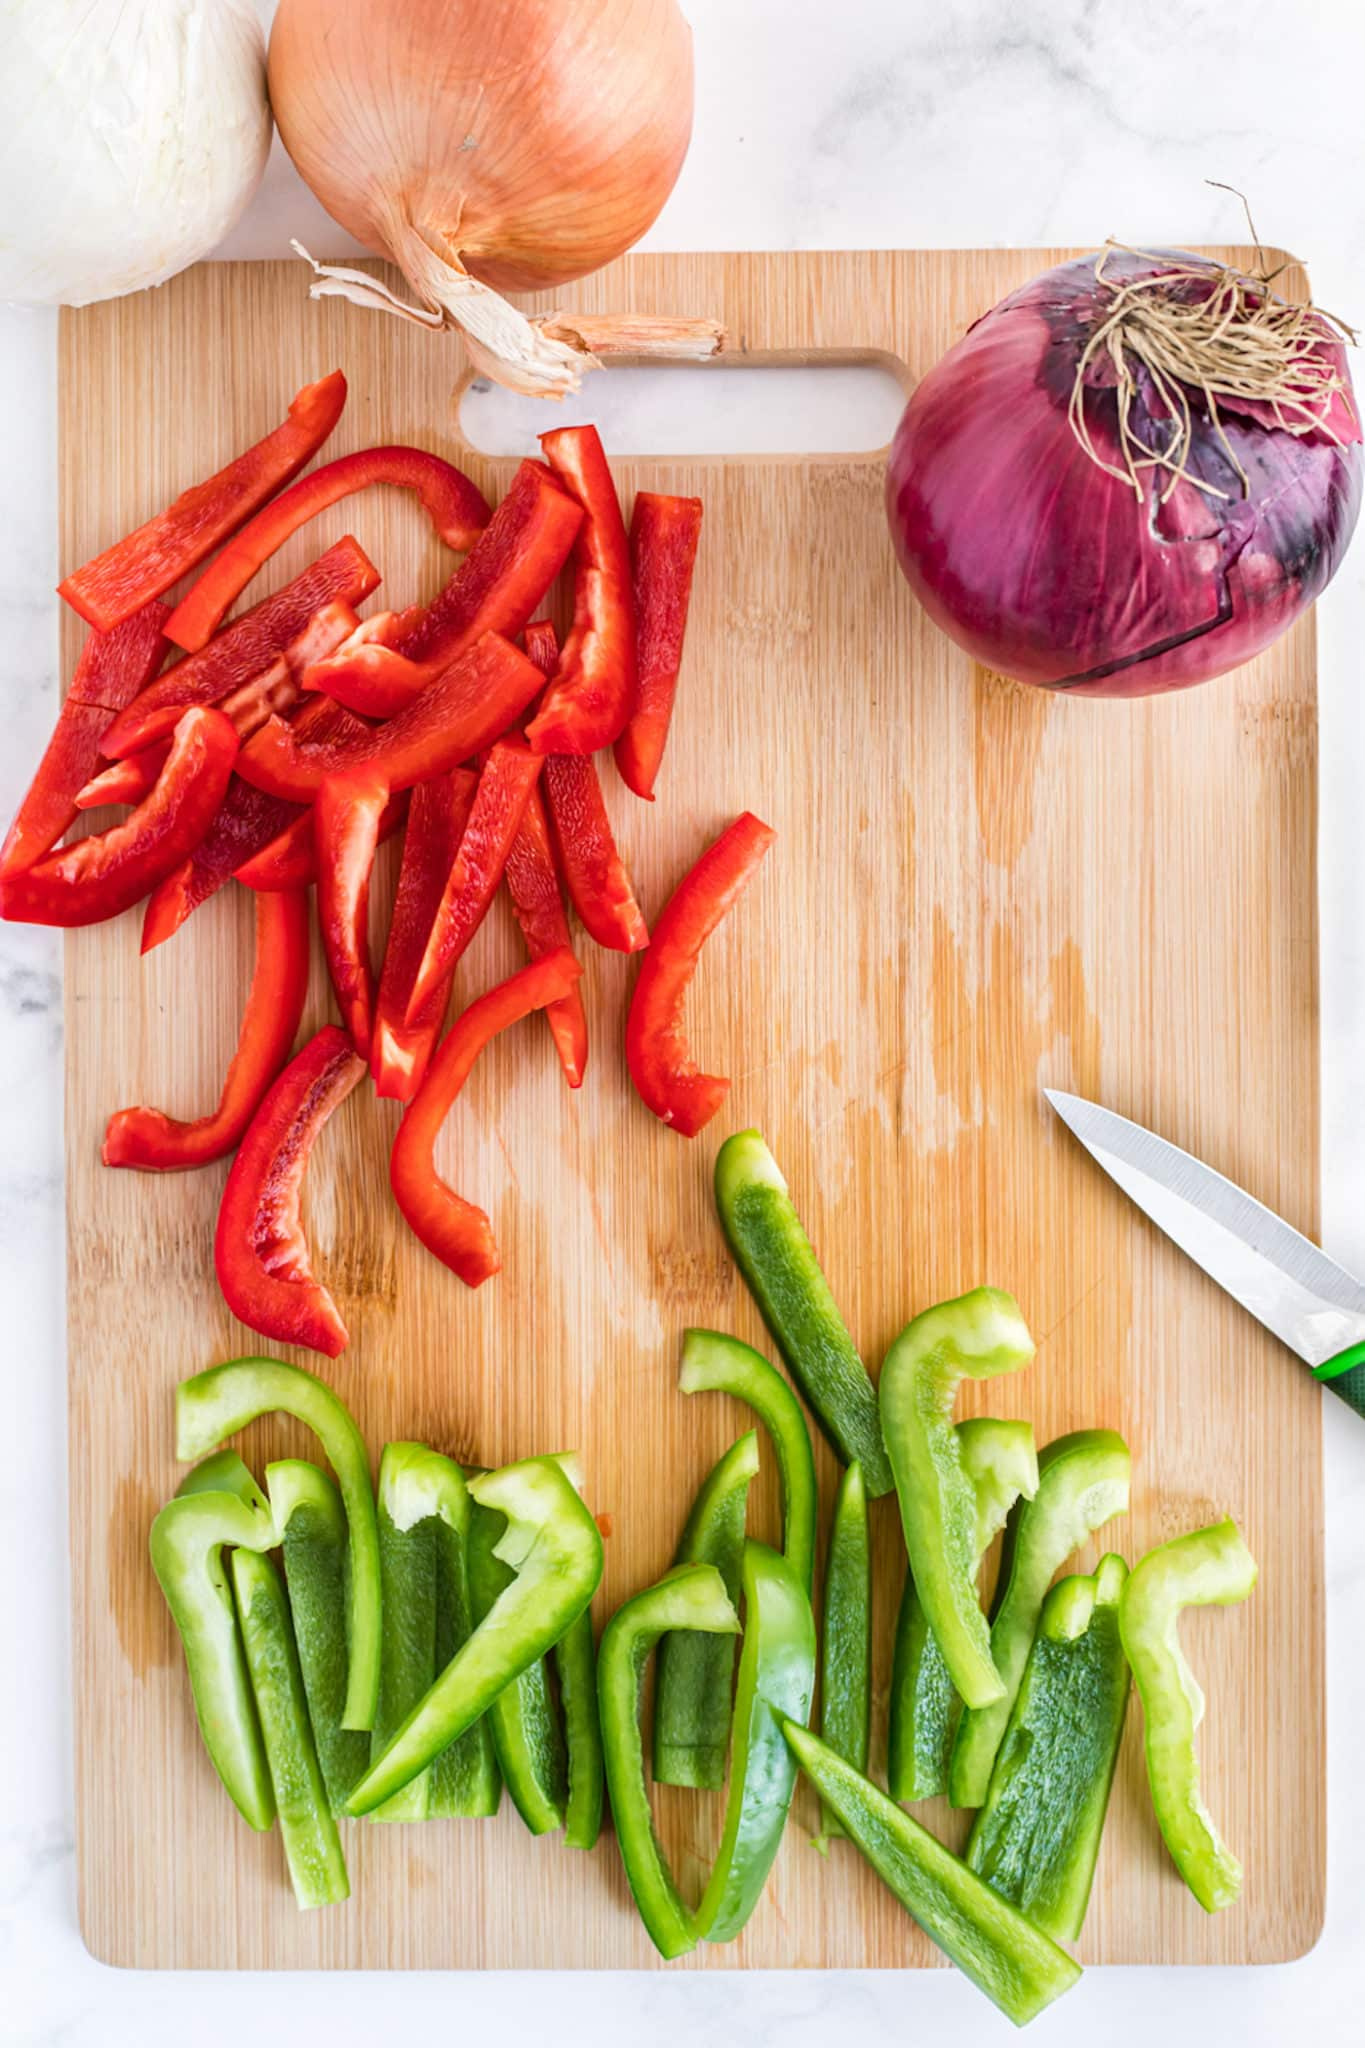 Sliced bell peppers on a cutting board